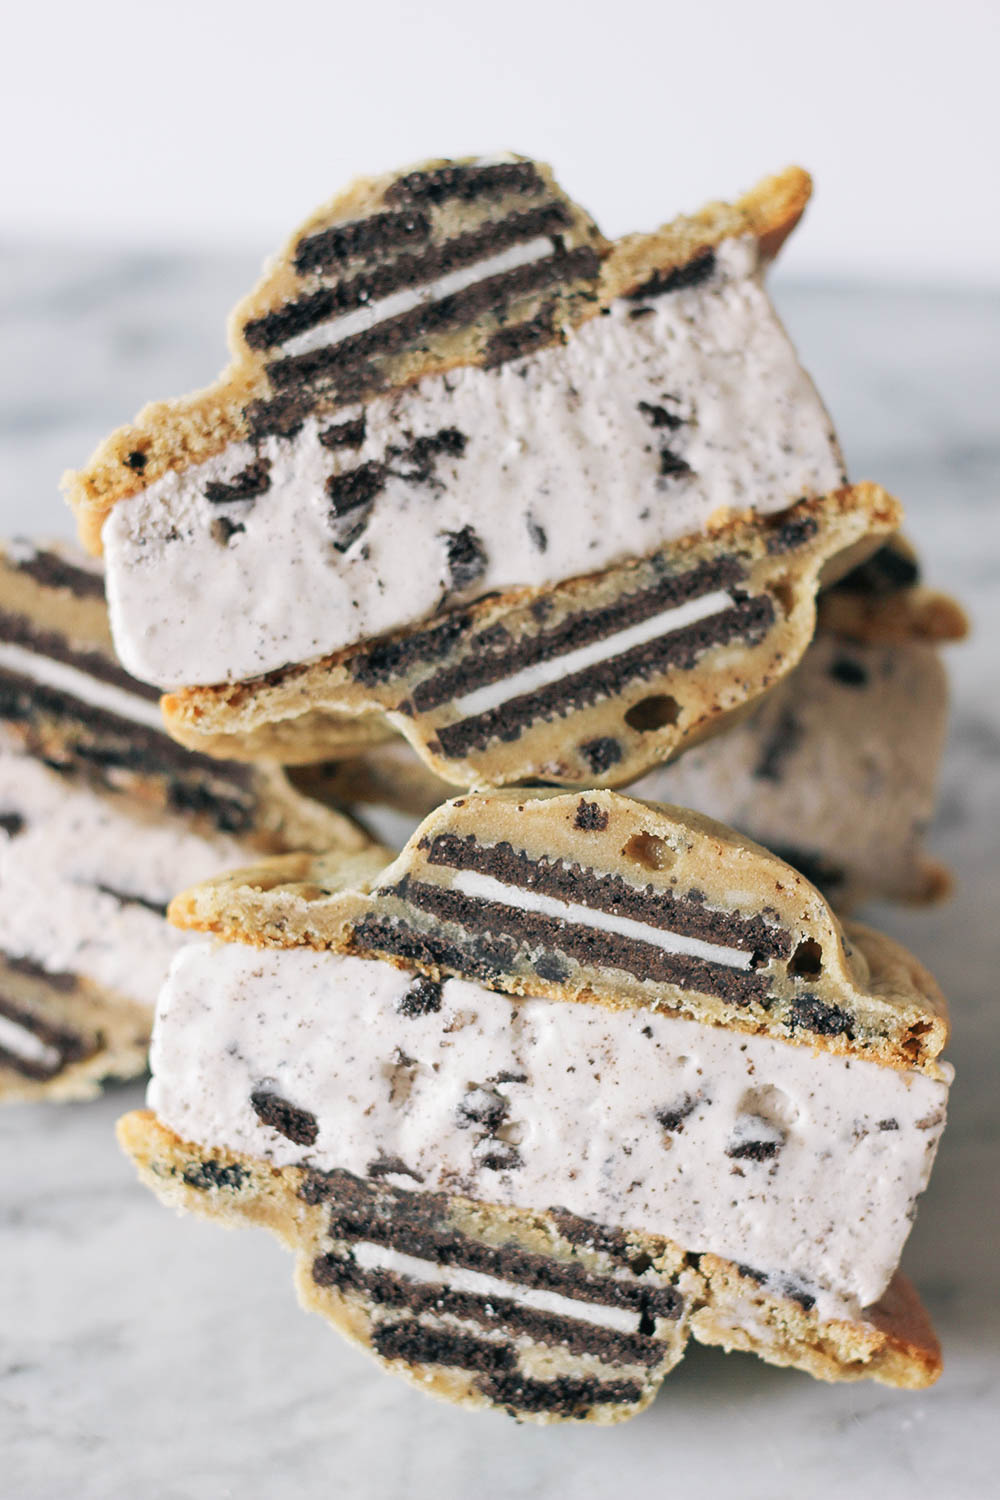 Triple Oreo ice cream sandwiches with Oreos baked right into the cookies. Get the full